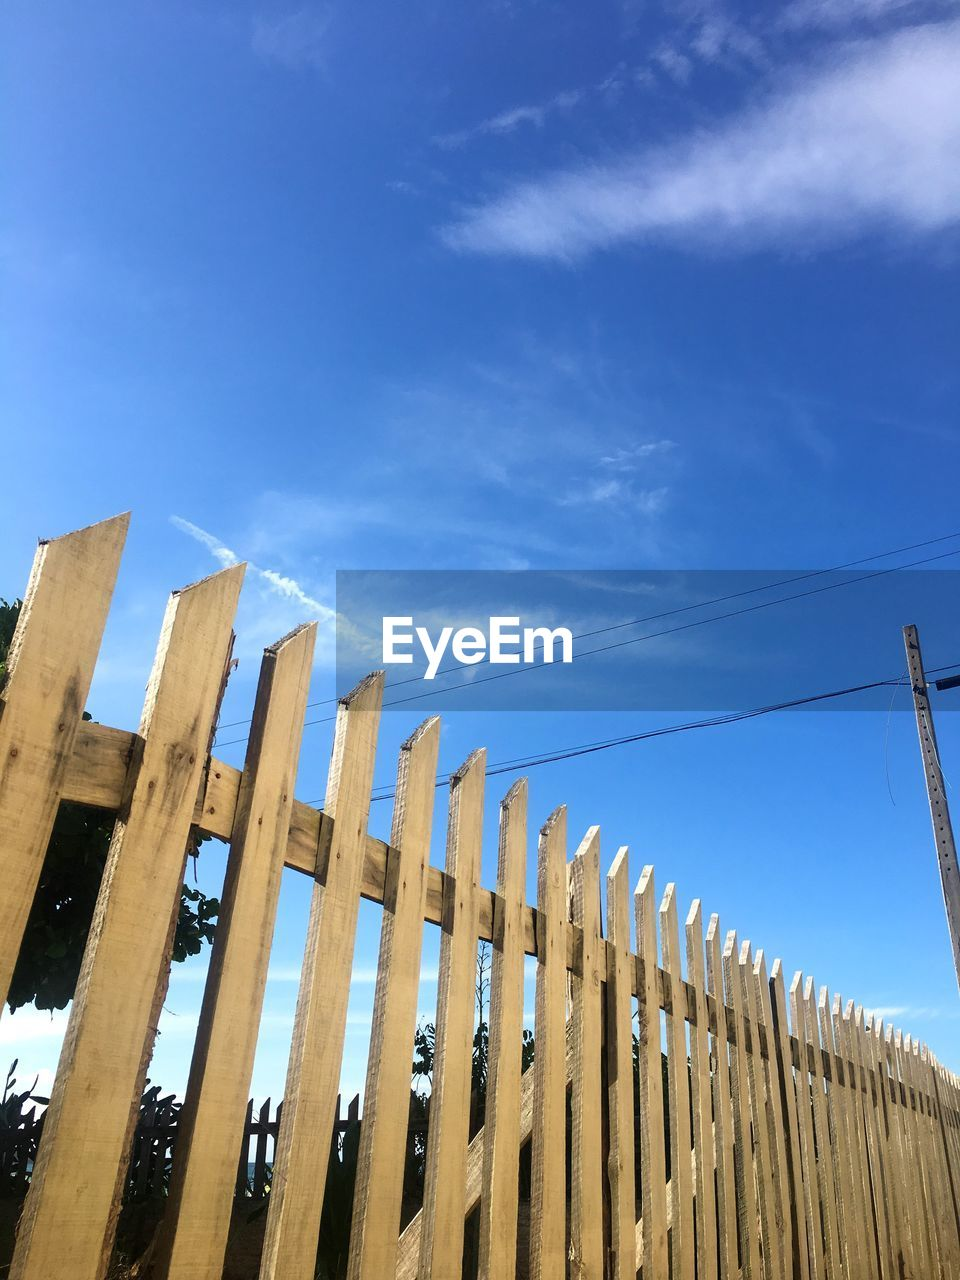 sky, low angle view, barrier, fence, blue, boundary, cloud - sky, wood - material, day, nature, no people, built structure, architecture, sunlight, security, protection, safety, in a row, outdoors, building exterior